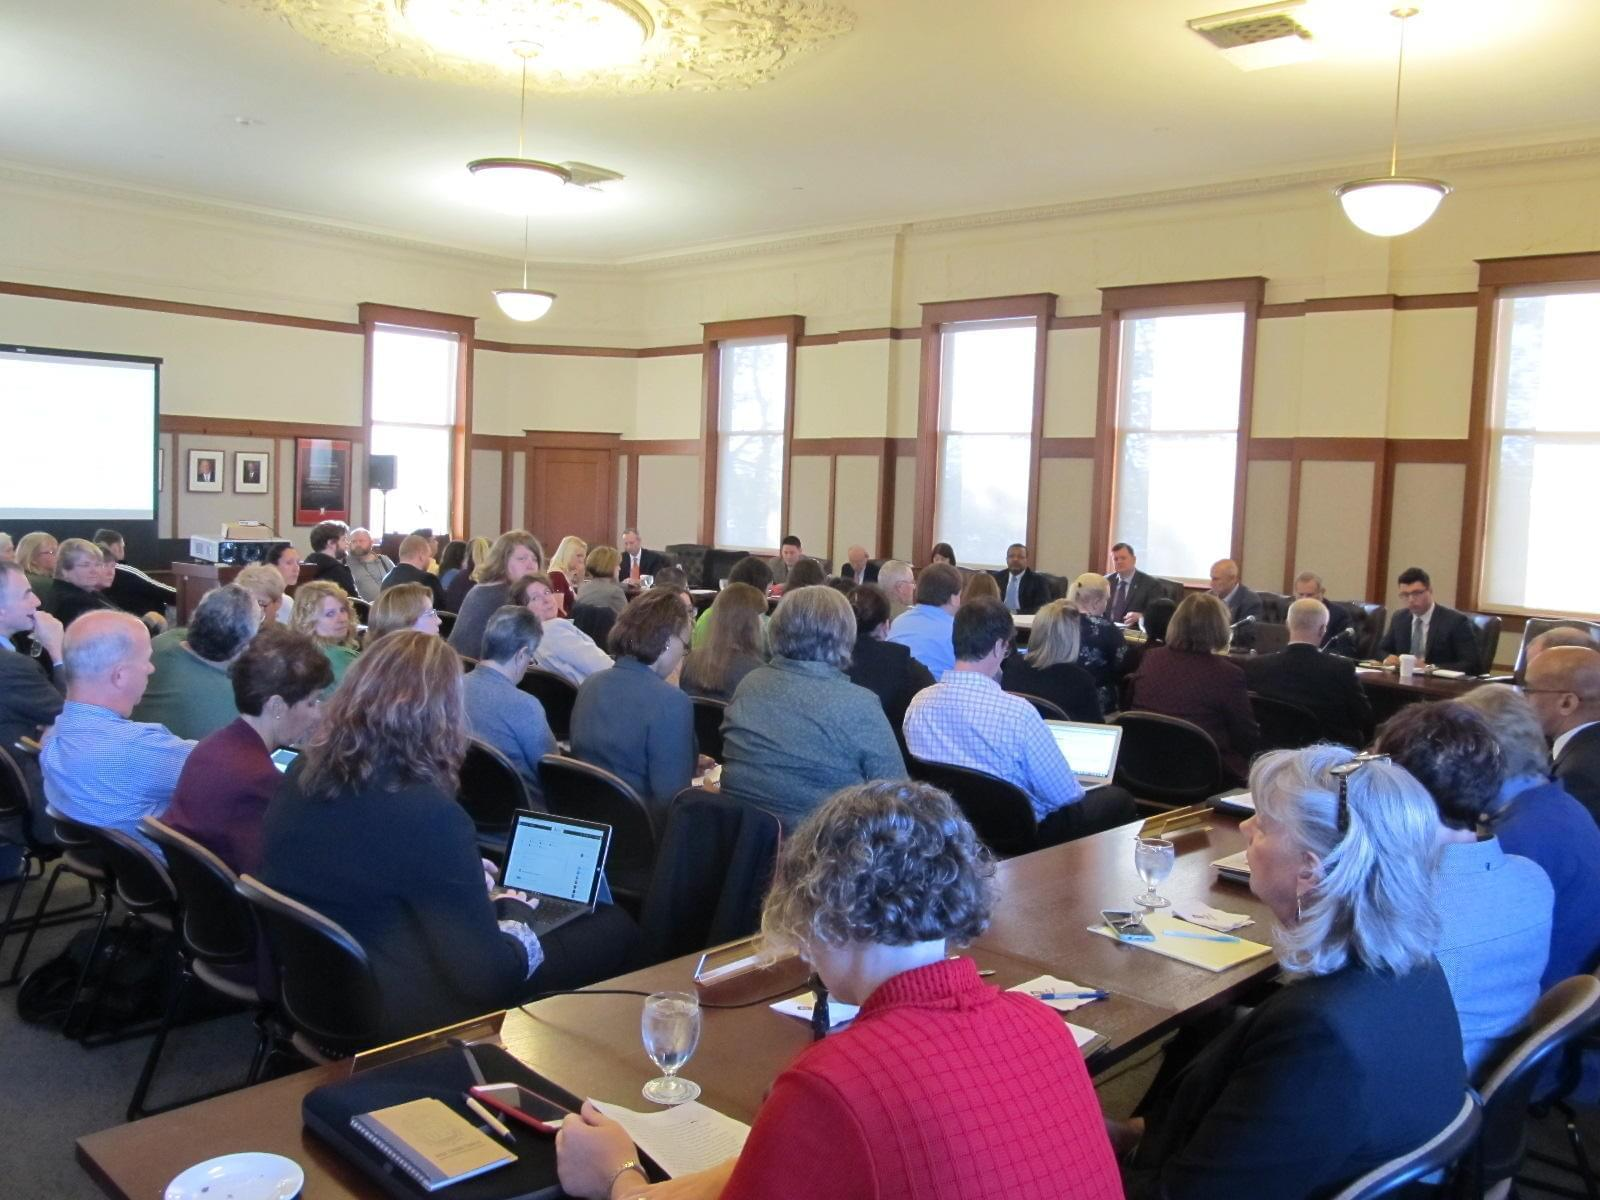 The special meeting of the NIU Board of Trustees drew a full house to the Altgeld Hall board room Thursday morning.